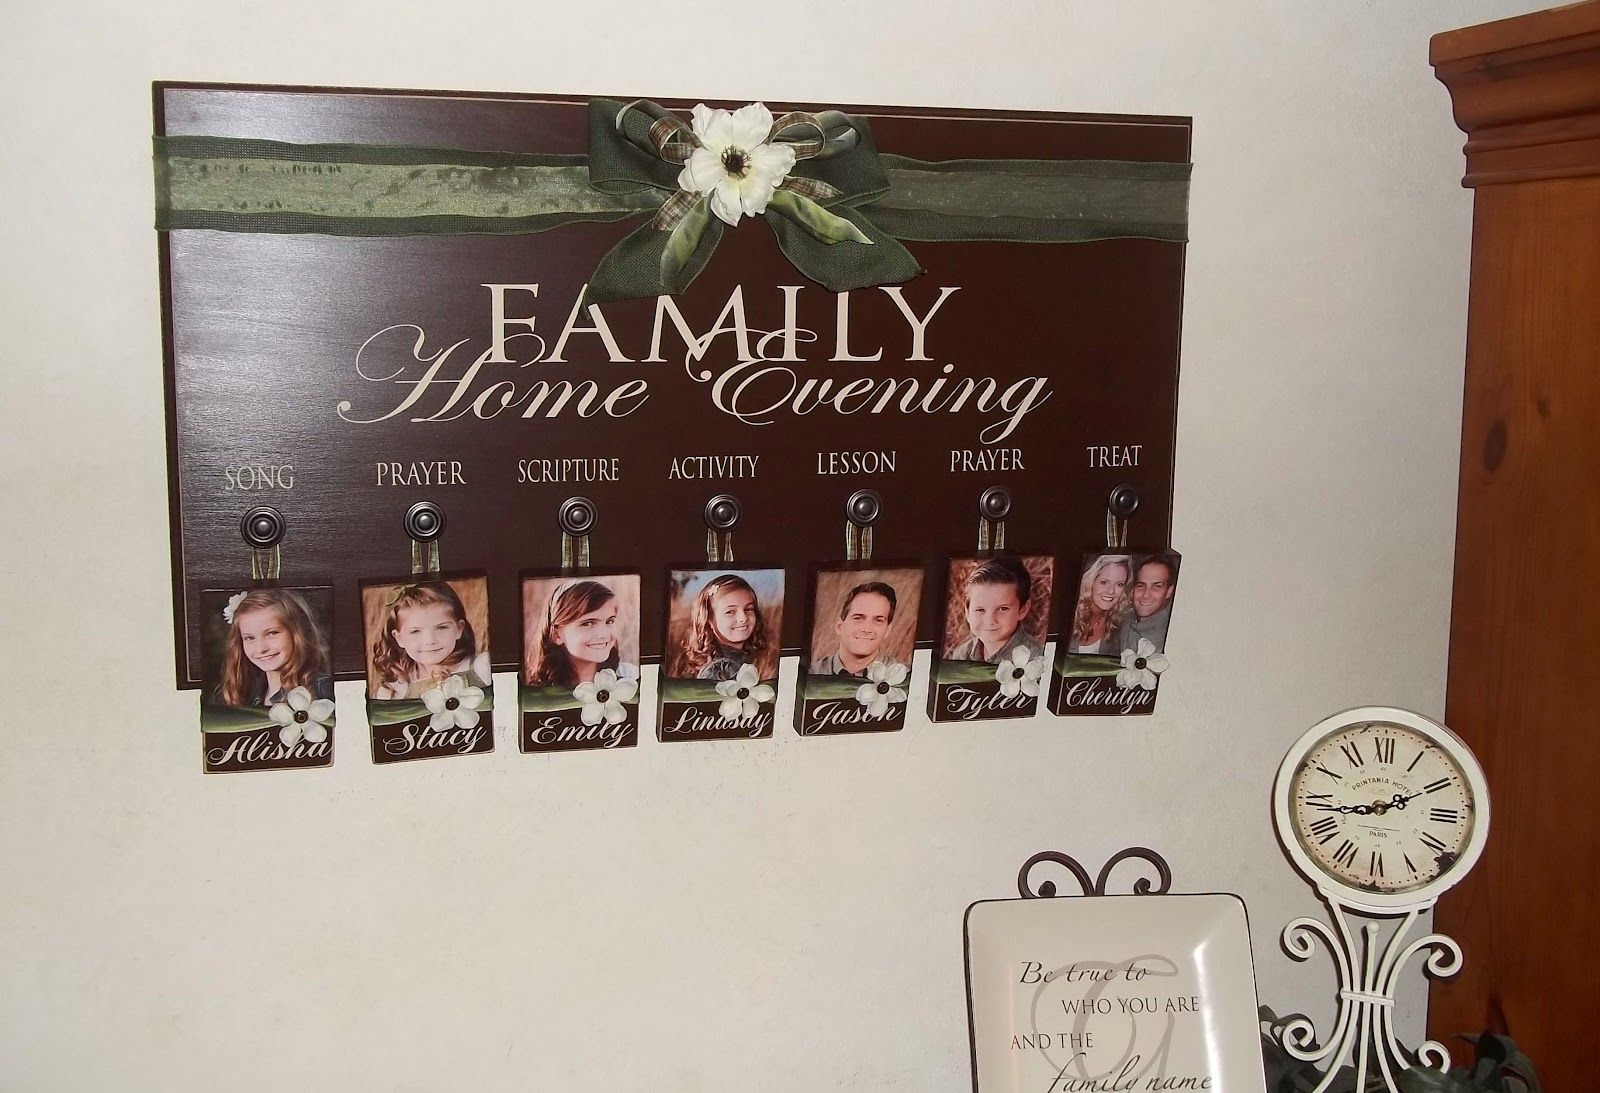 Cher's Signs by Design: Family Home Evening Board